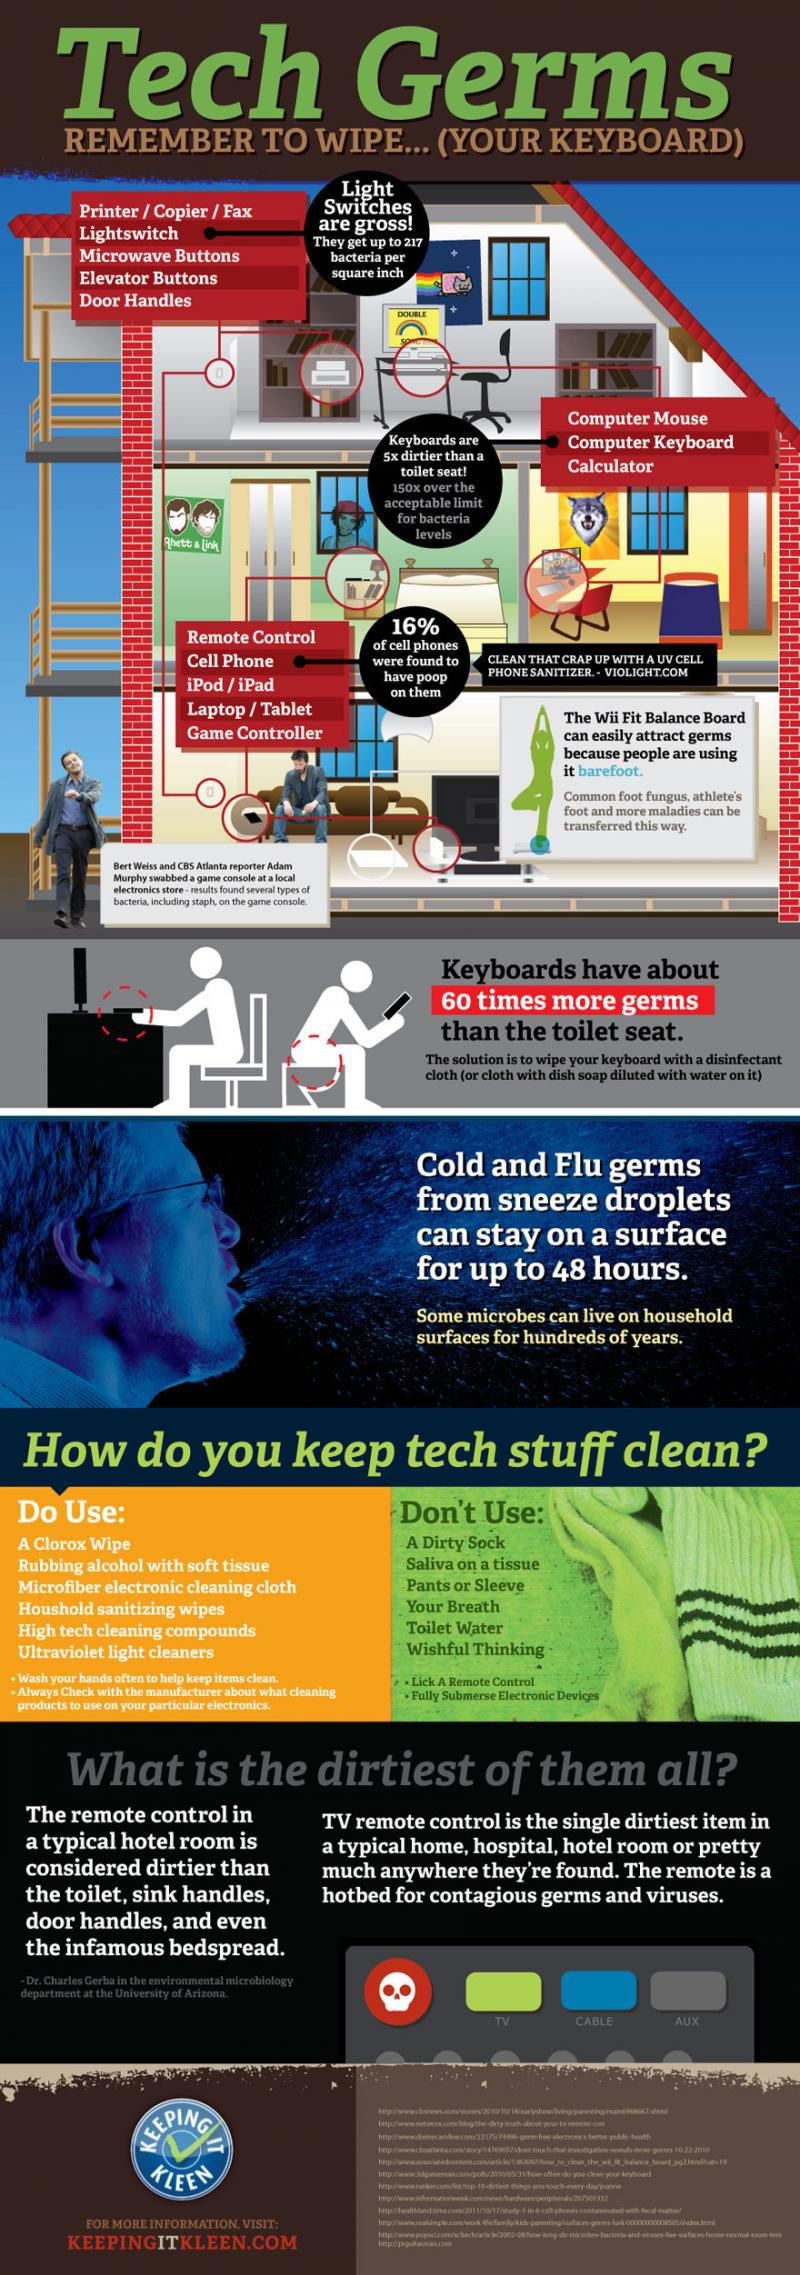 Tech Germs: Remember to Wipe (Your Keyboard) #infographic